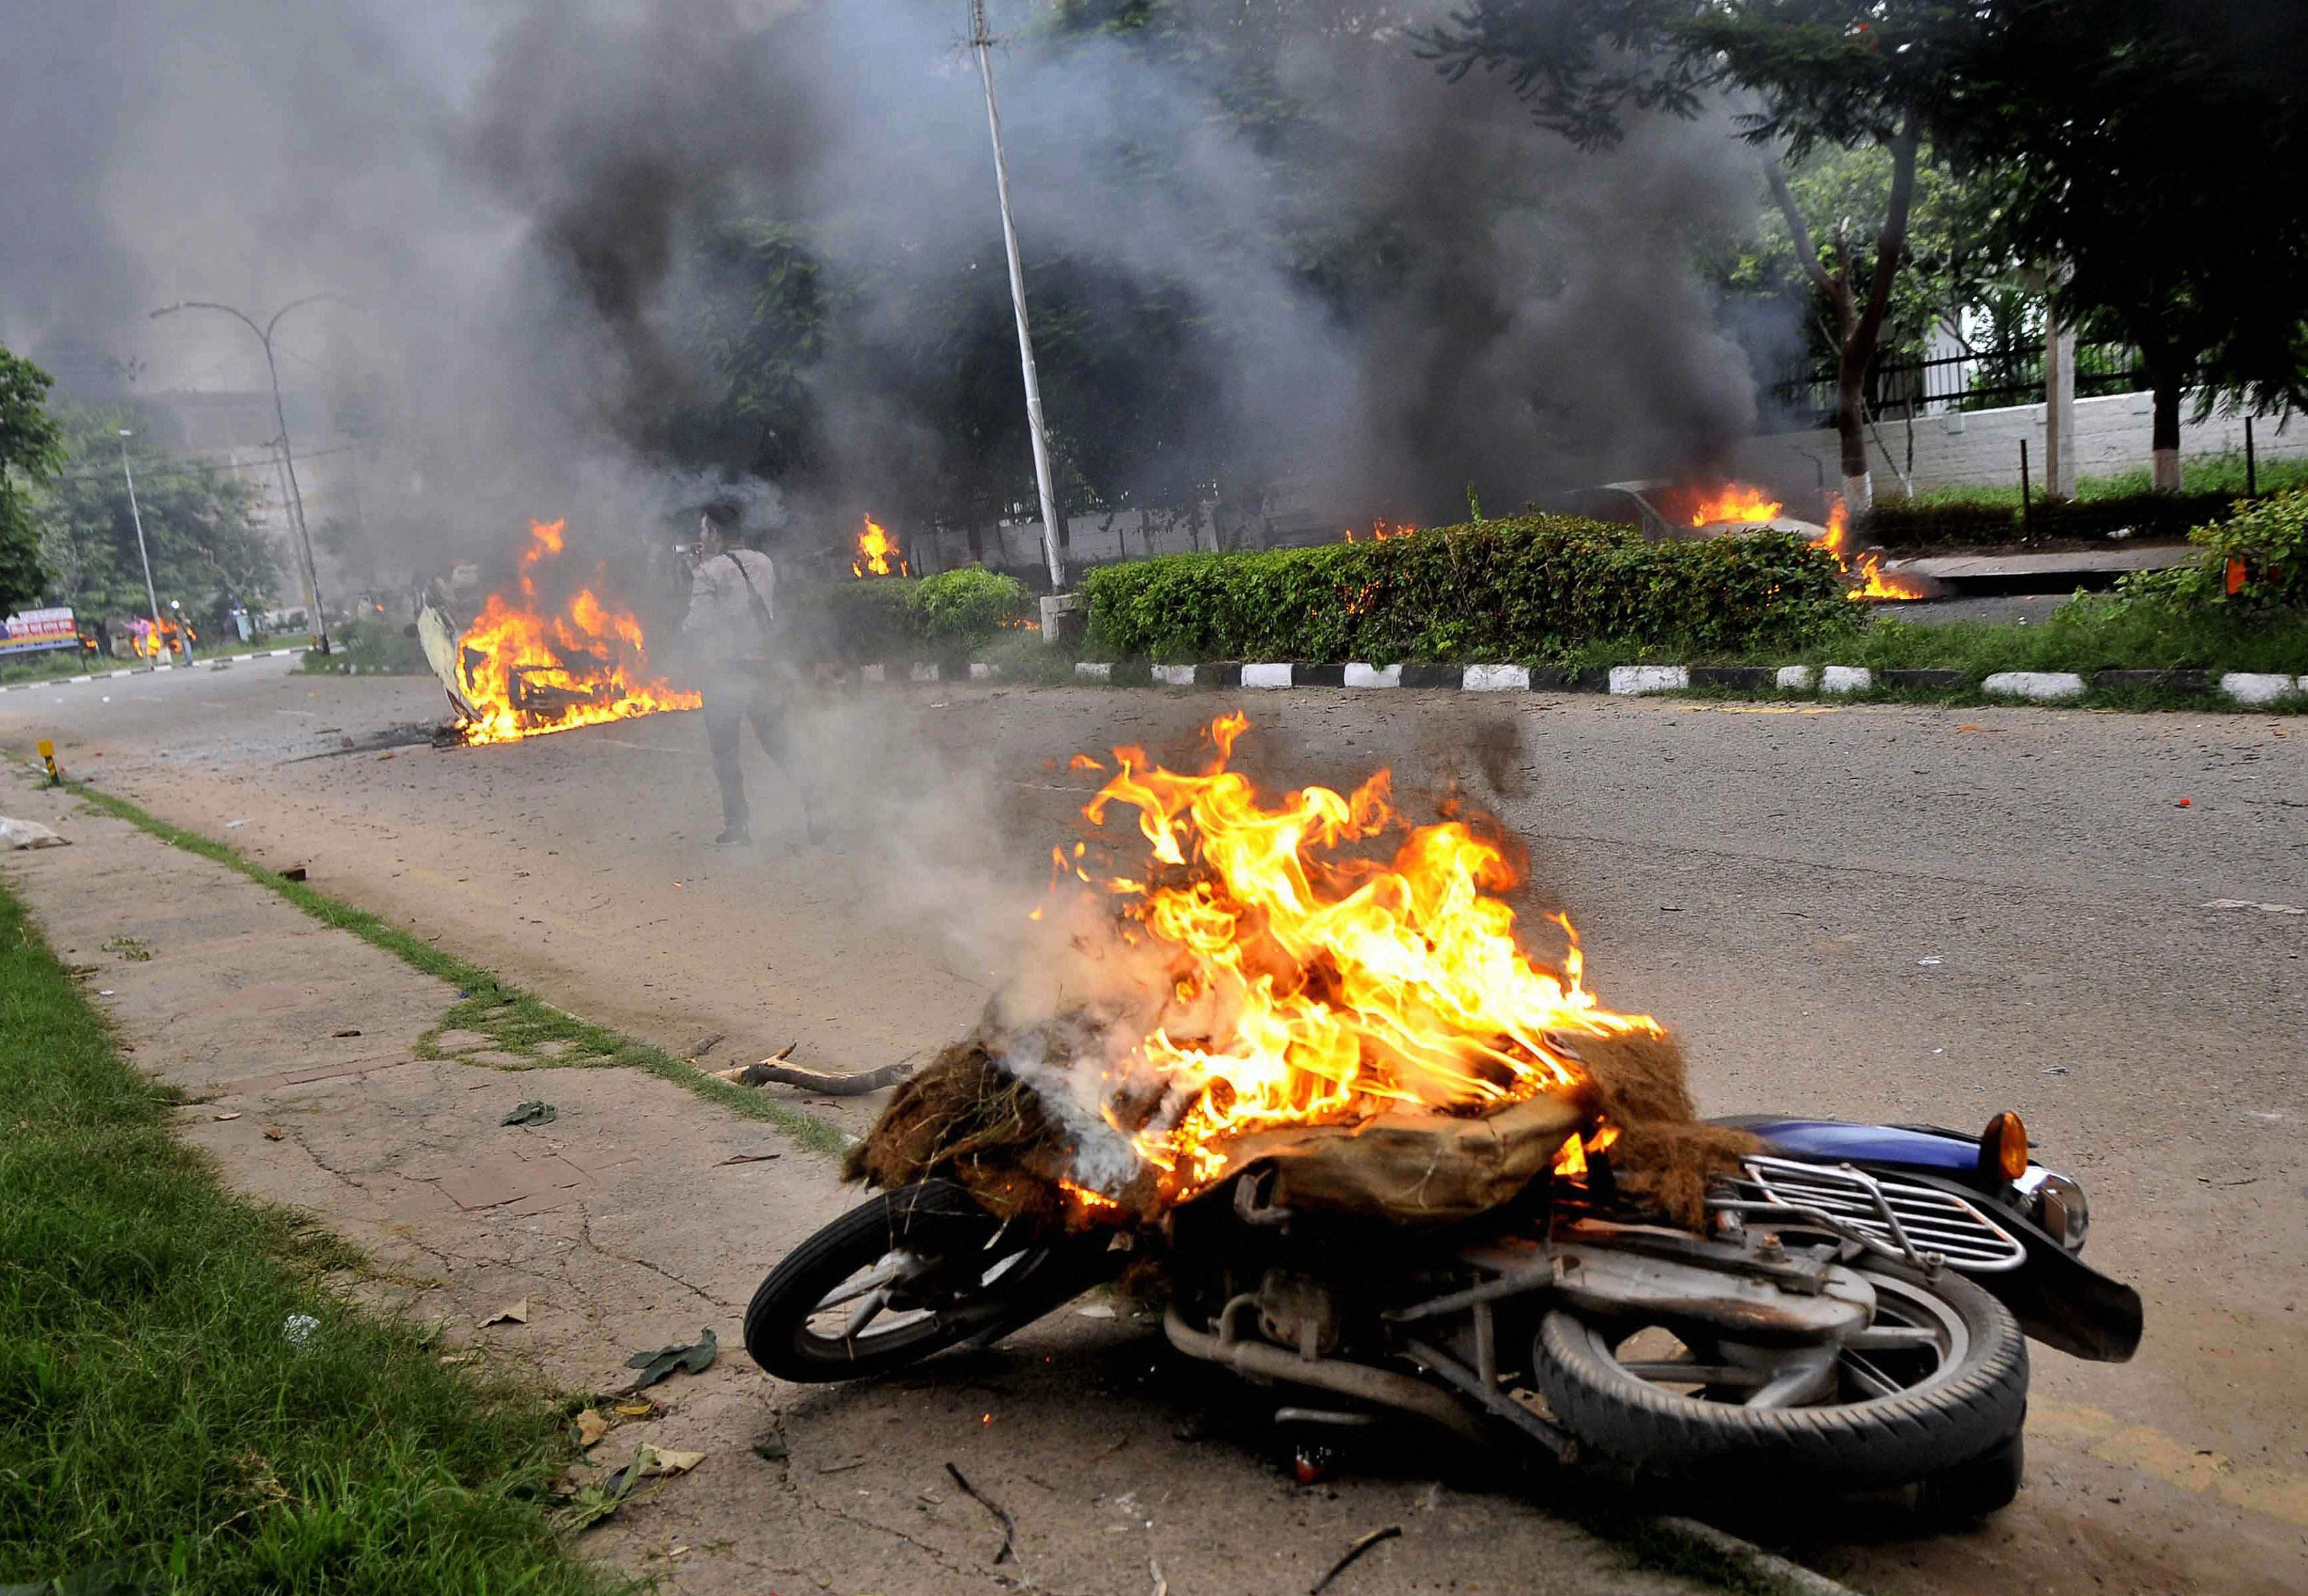 A motorcycle on fire in Panchkula, Haryana, which was at the centre of the violence. (Credit: PTI)